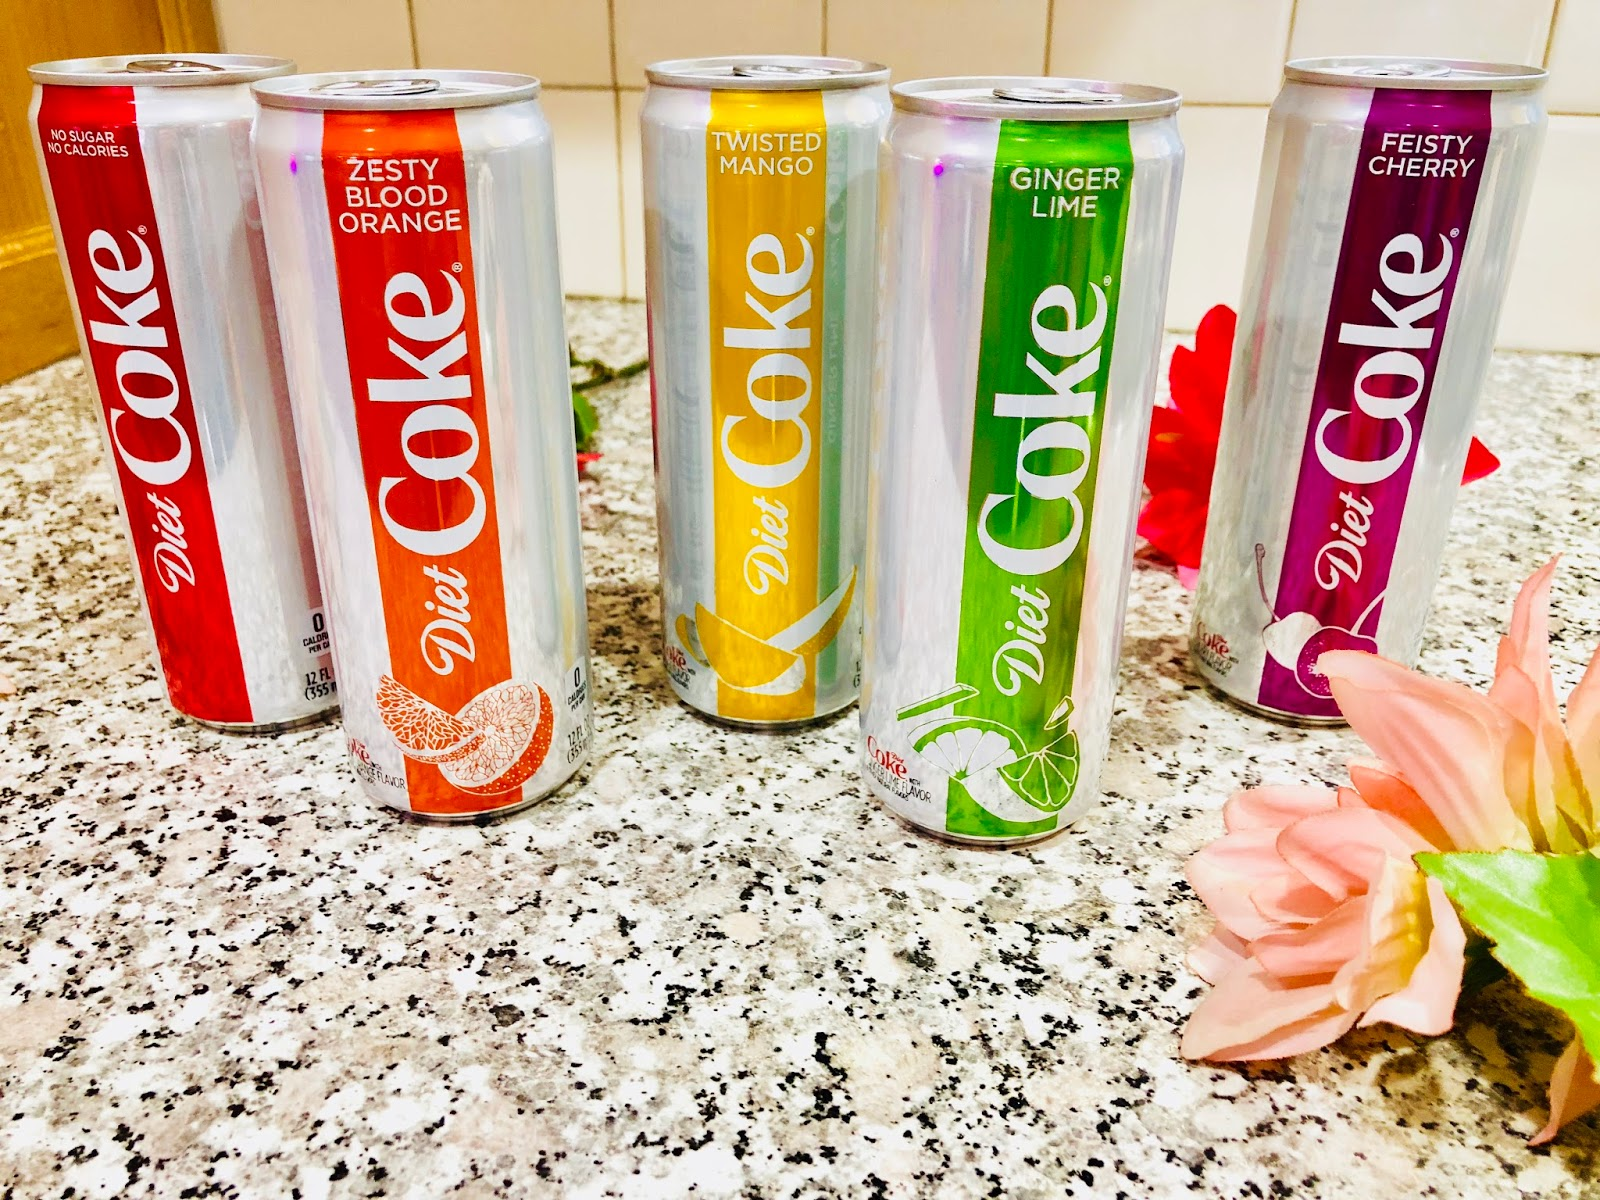 diet coke, new diet coke, 12 oz sleek cans, diet coke sleek cans, diet coke new flavors, how to get through a day, go on vacation, having a chaotic day these tips will work,